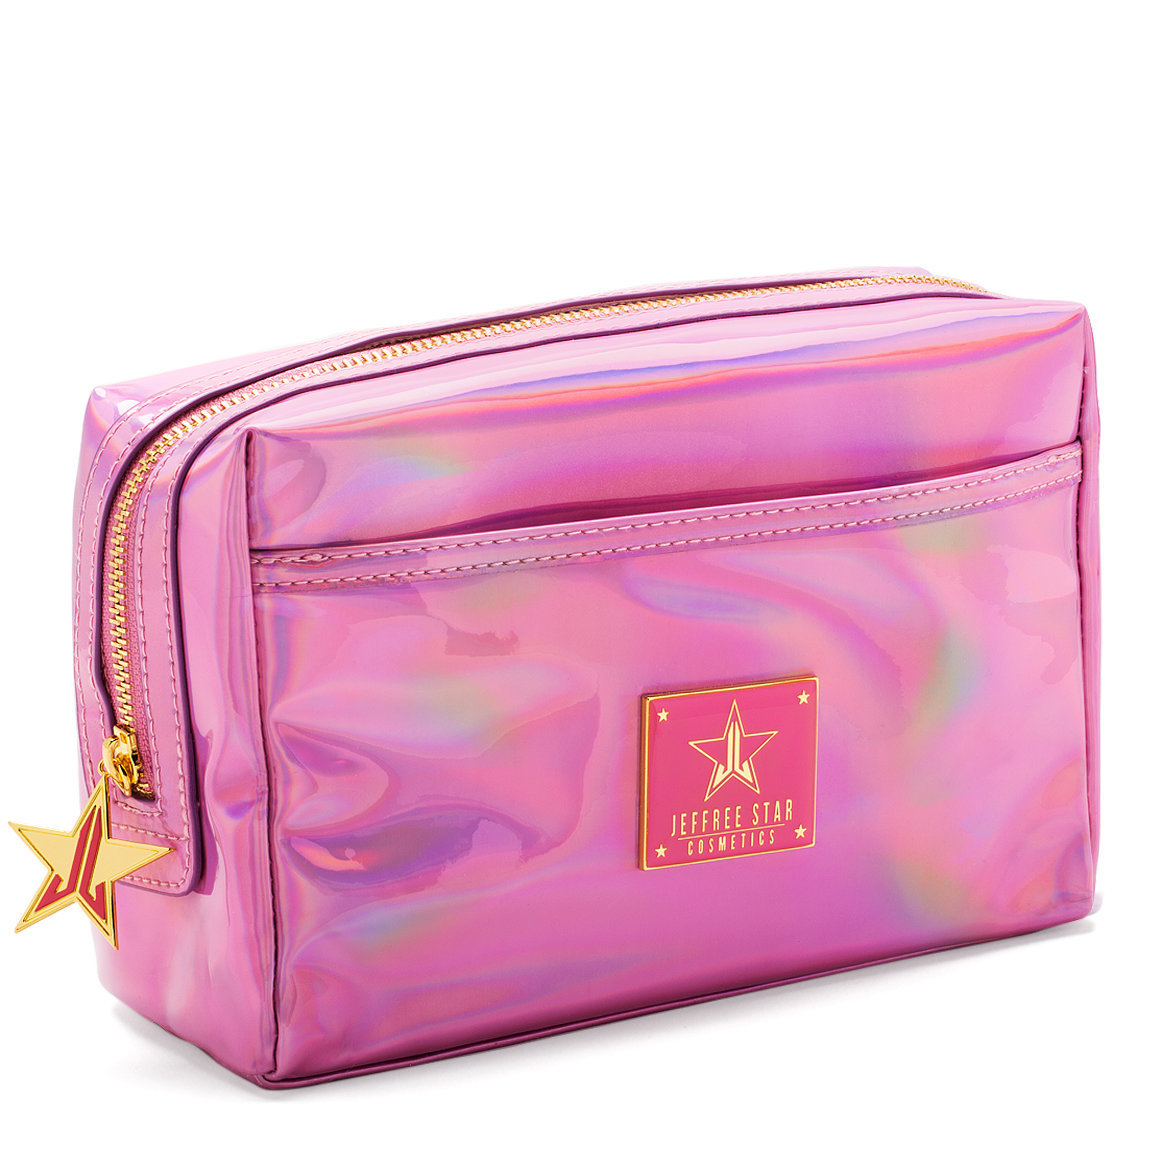 Jeffree Star Cosmetics Holographic Makeup Bag Pink  product smear.